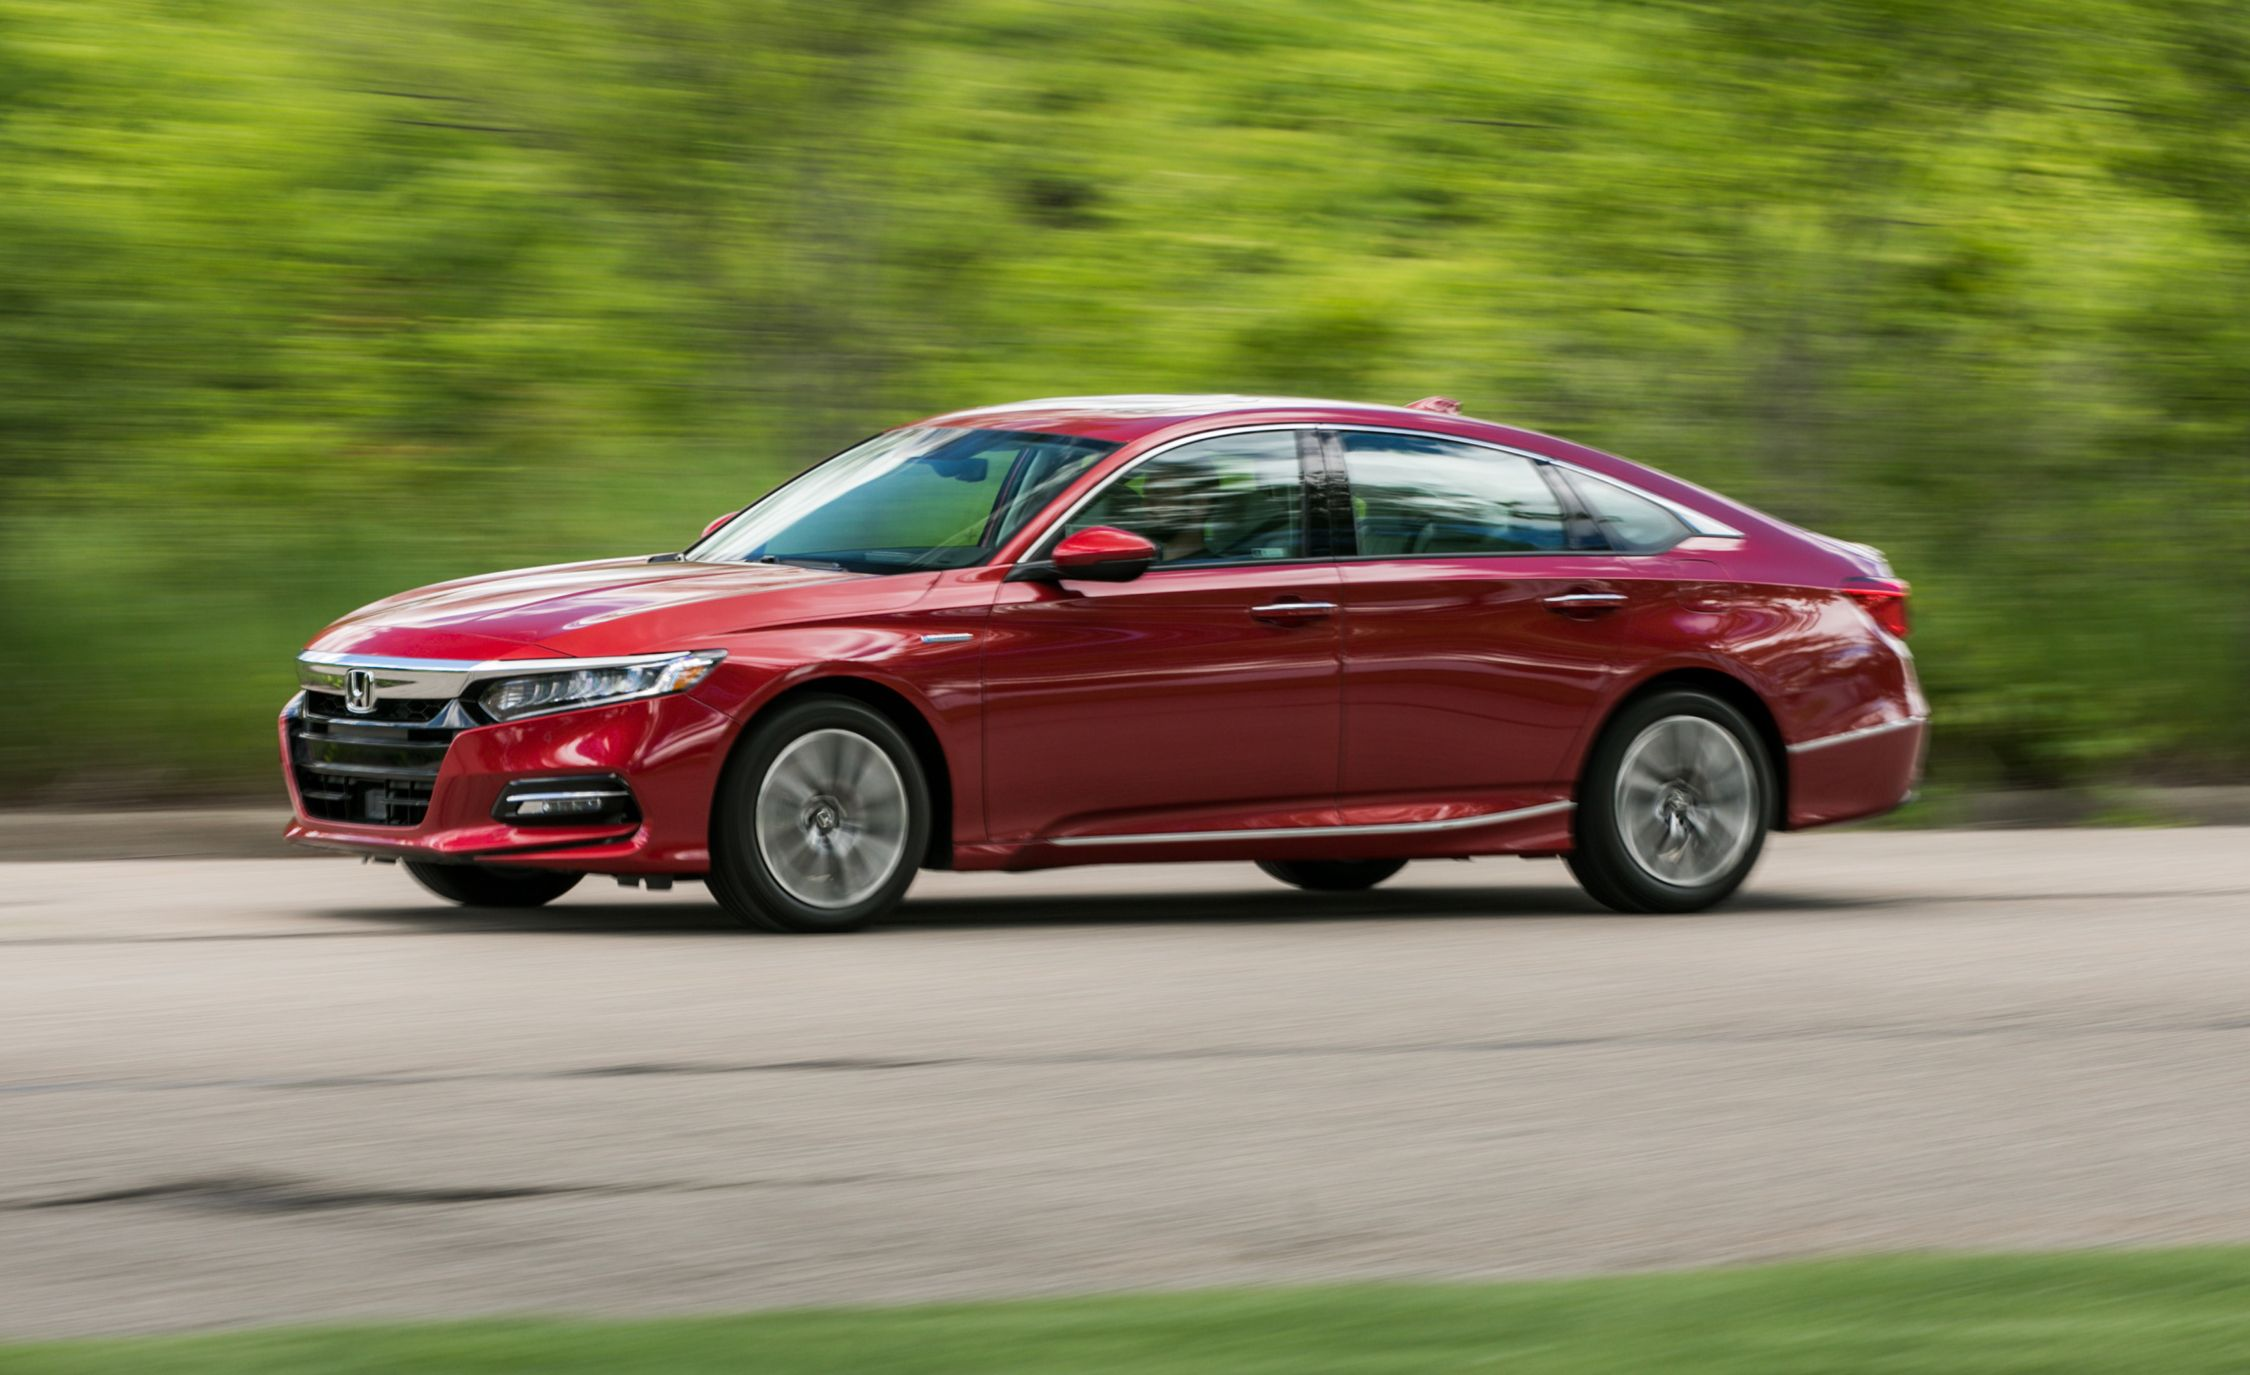 2018 Honda Accord Hybrid Fuel Efficient With A Few Compromises